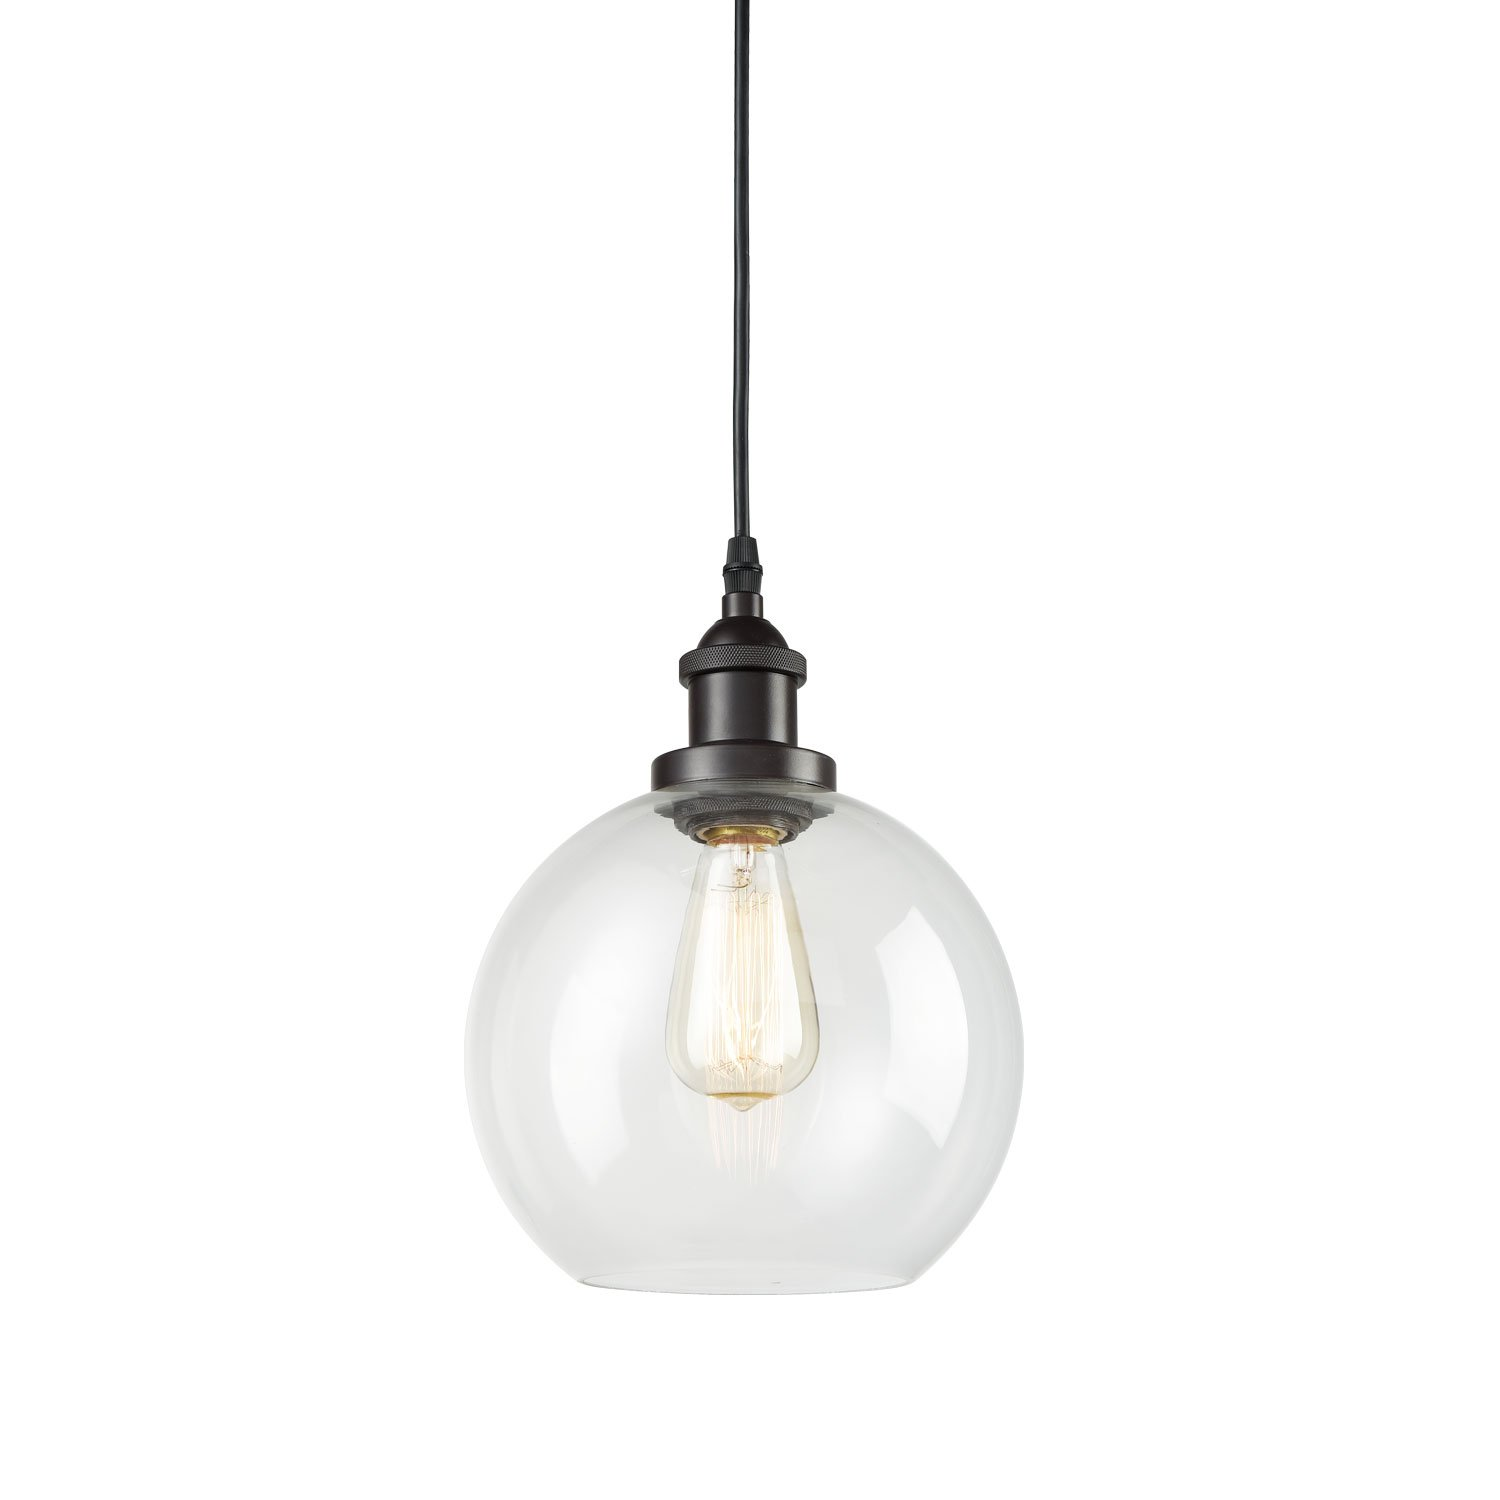 CLAXY Ecopower Lighting Vintage Clear Glass Globe Pendant Oil Rubbed Bronze Kitchen Hanging Light